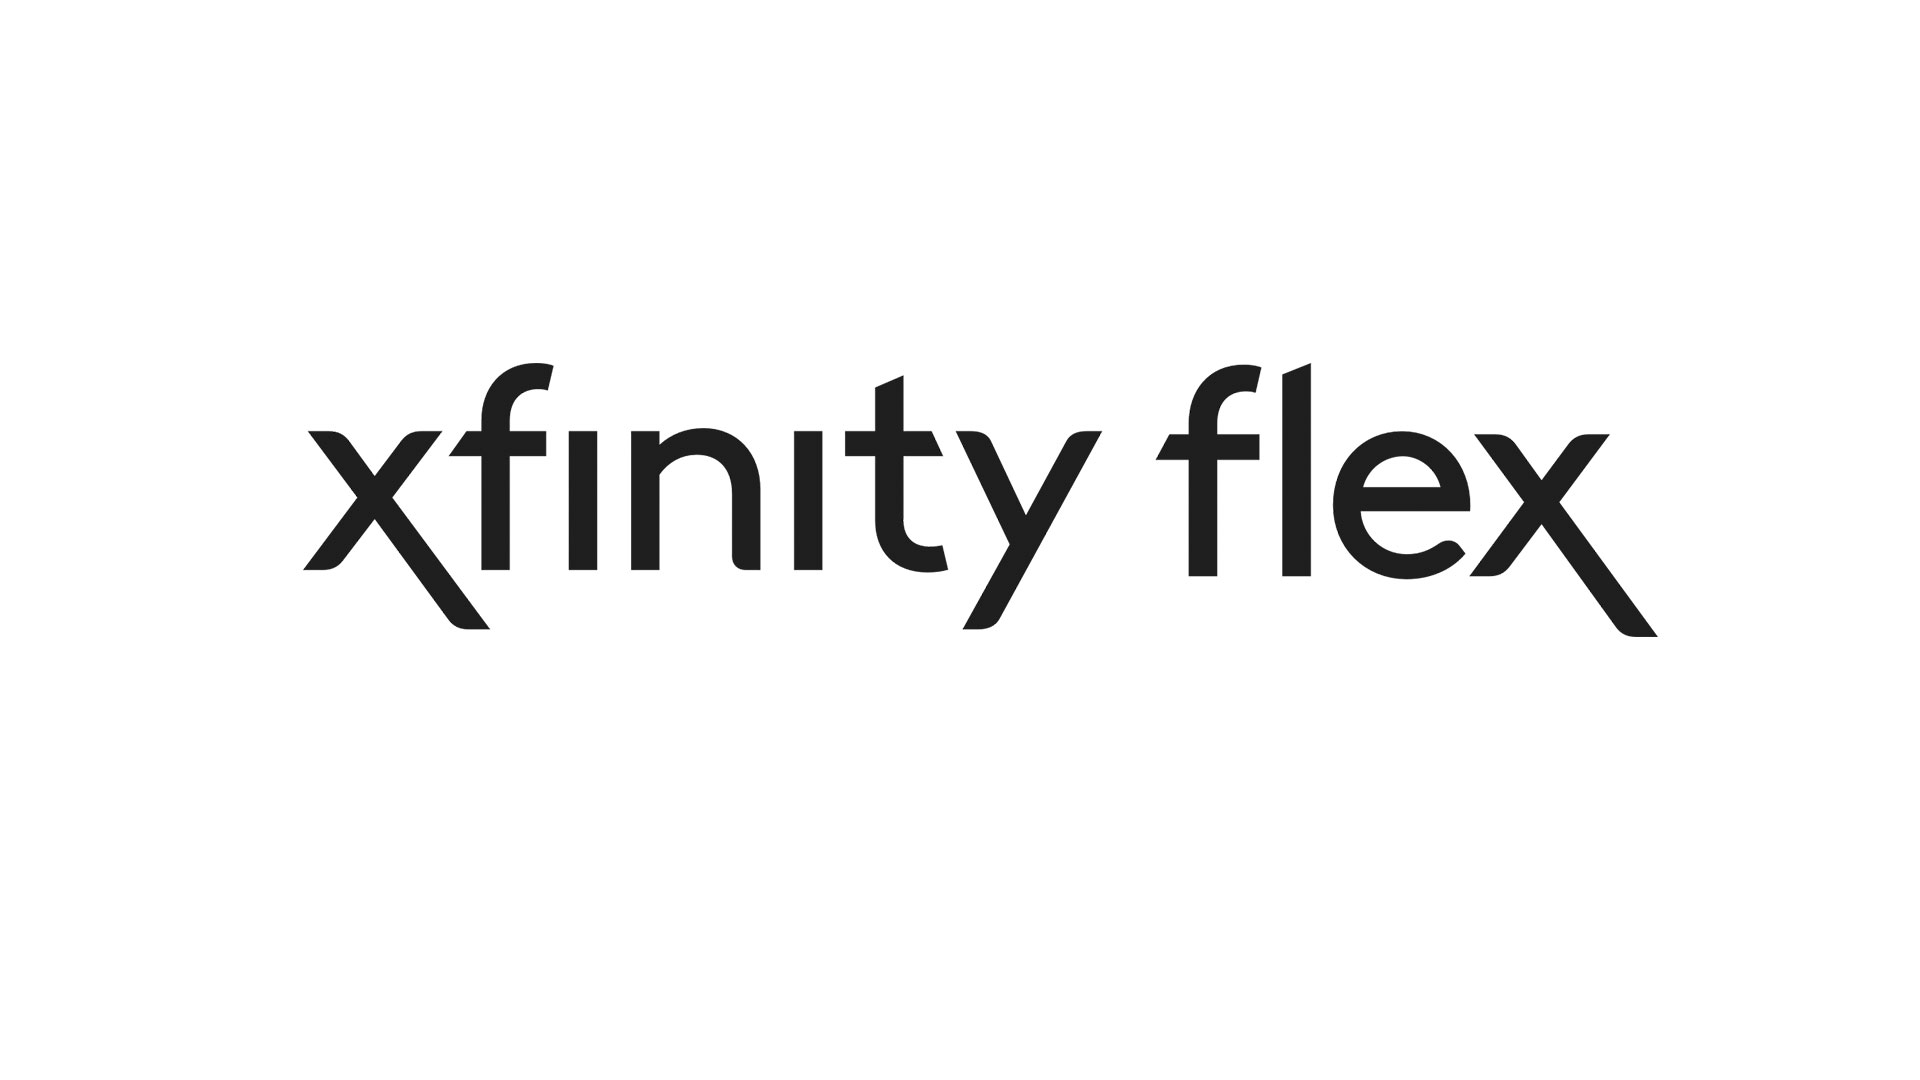 Comcast Makes Xfinity Flex Available To Internet-Only